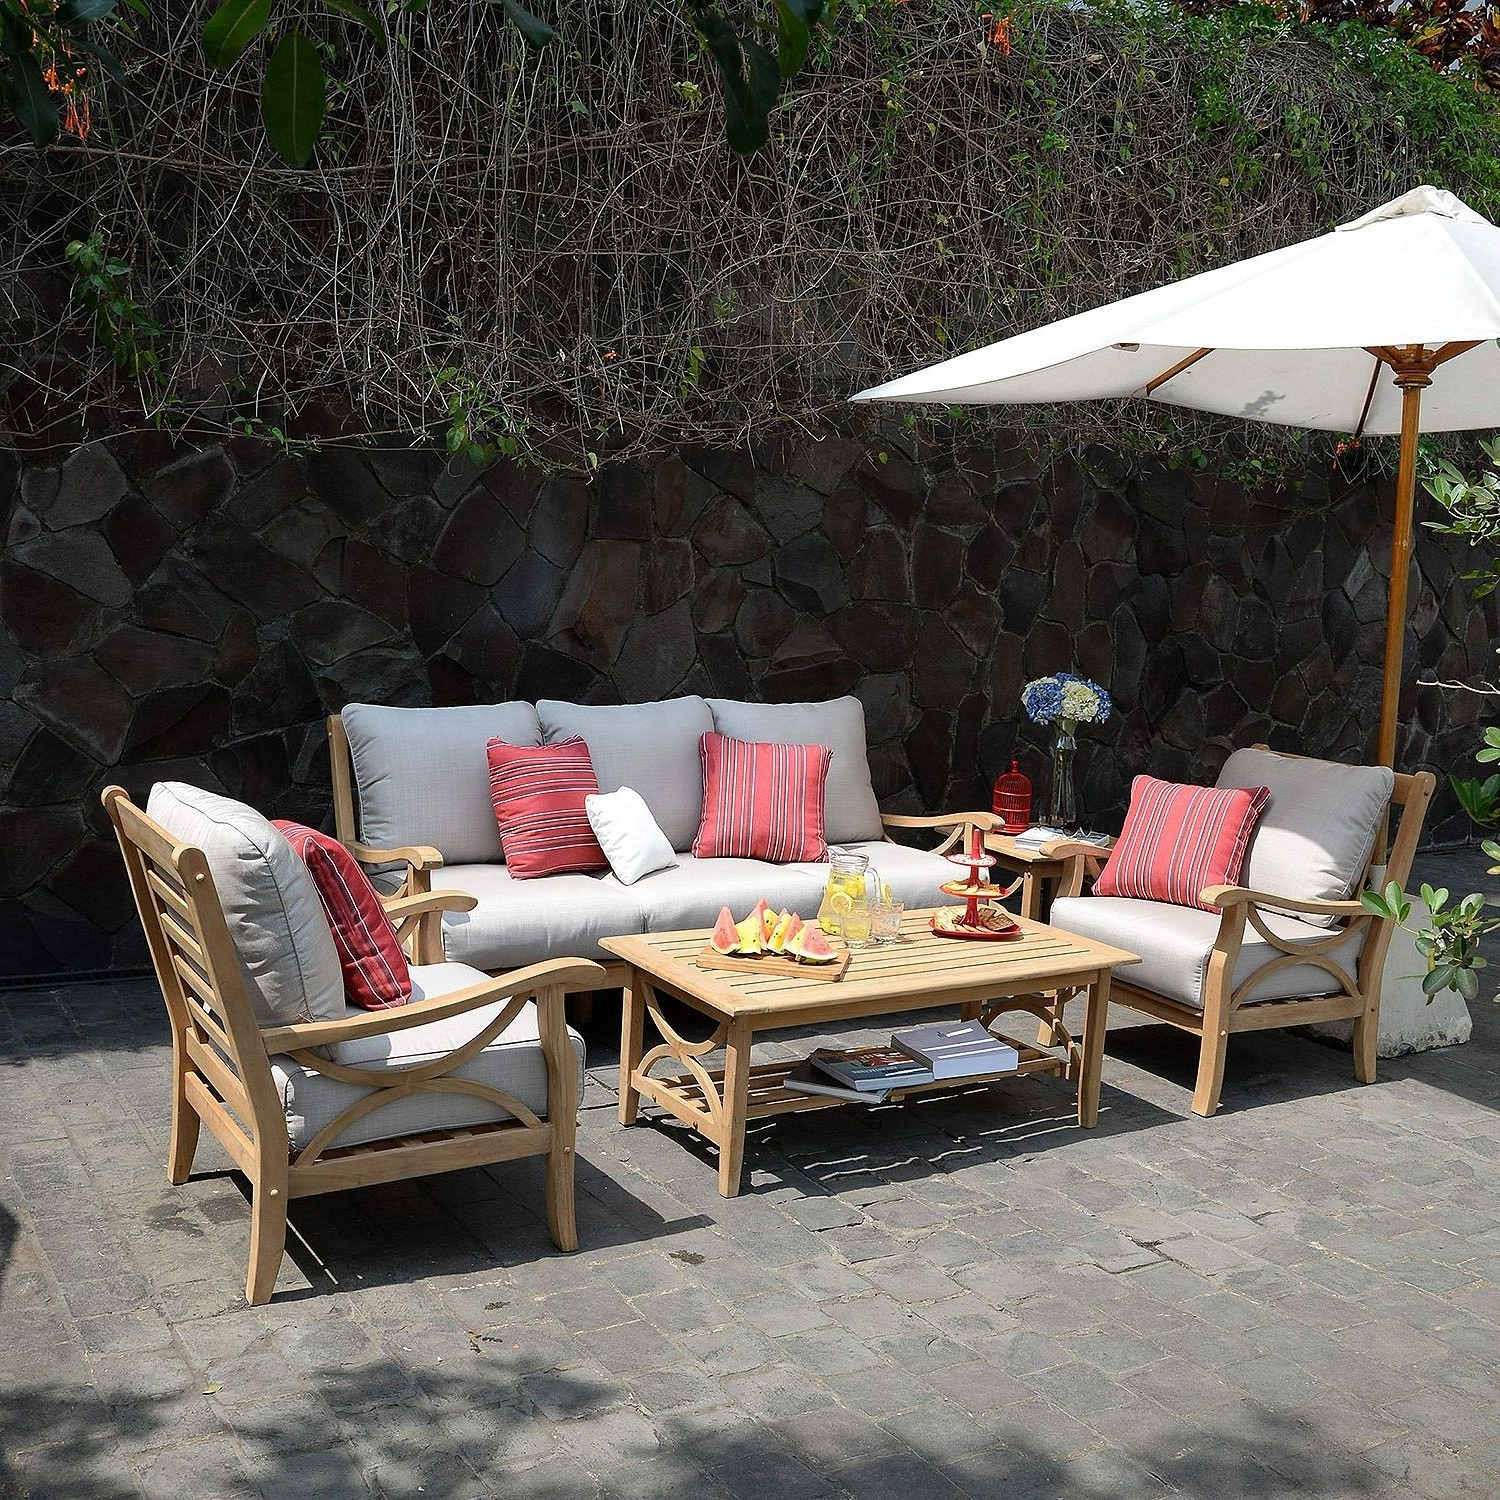 Sams Club Teak Patio Furniture F81X In Excellent Home Decor With Regard To Recent Teak Patio Conversation Sets (View 7 of 15)